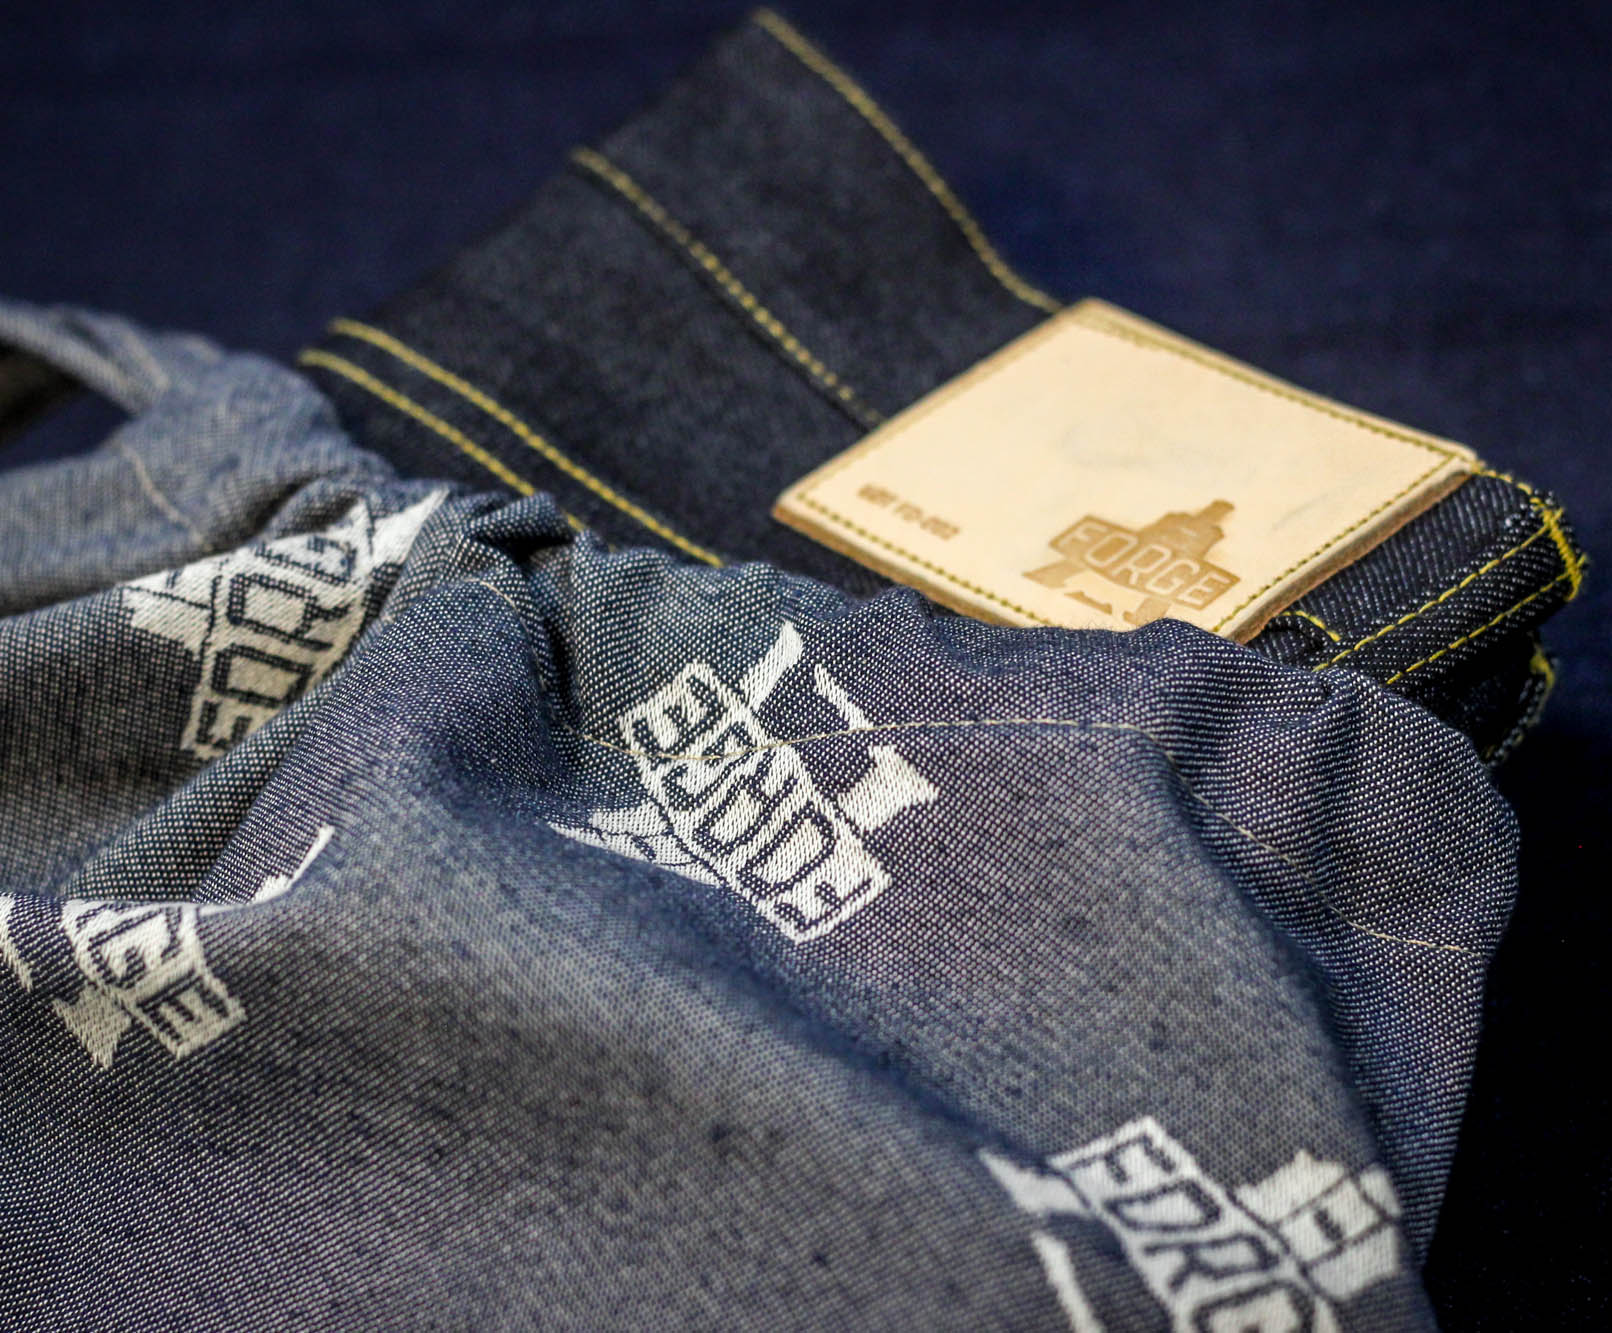 jeans and bag2.jpg